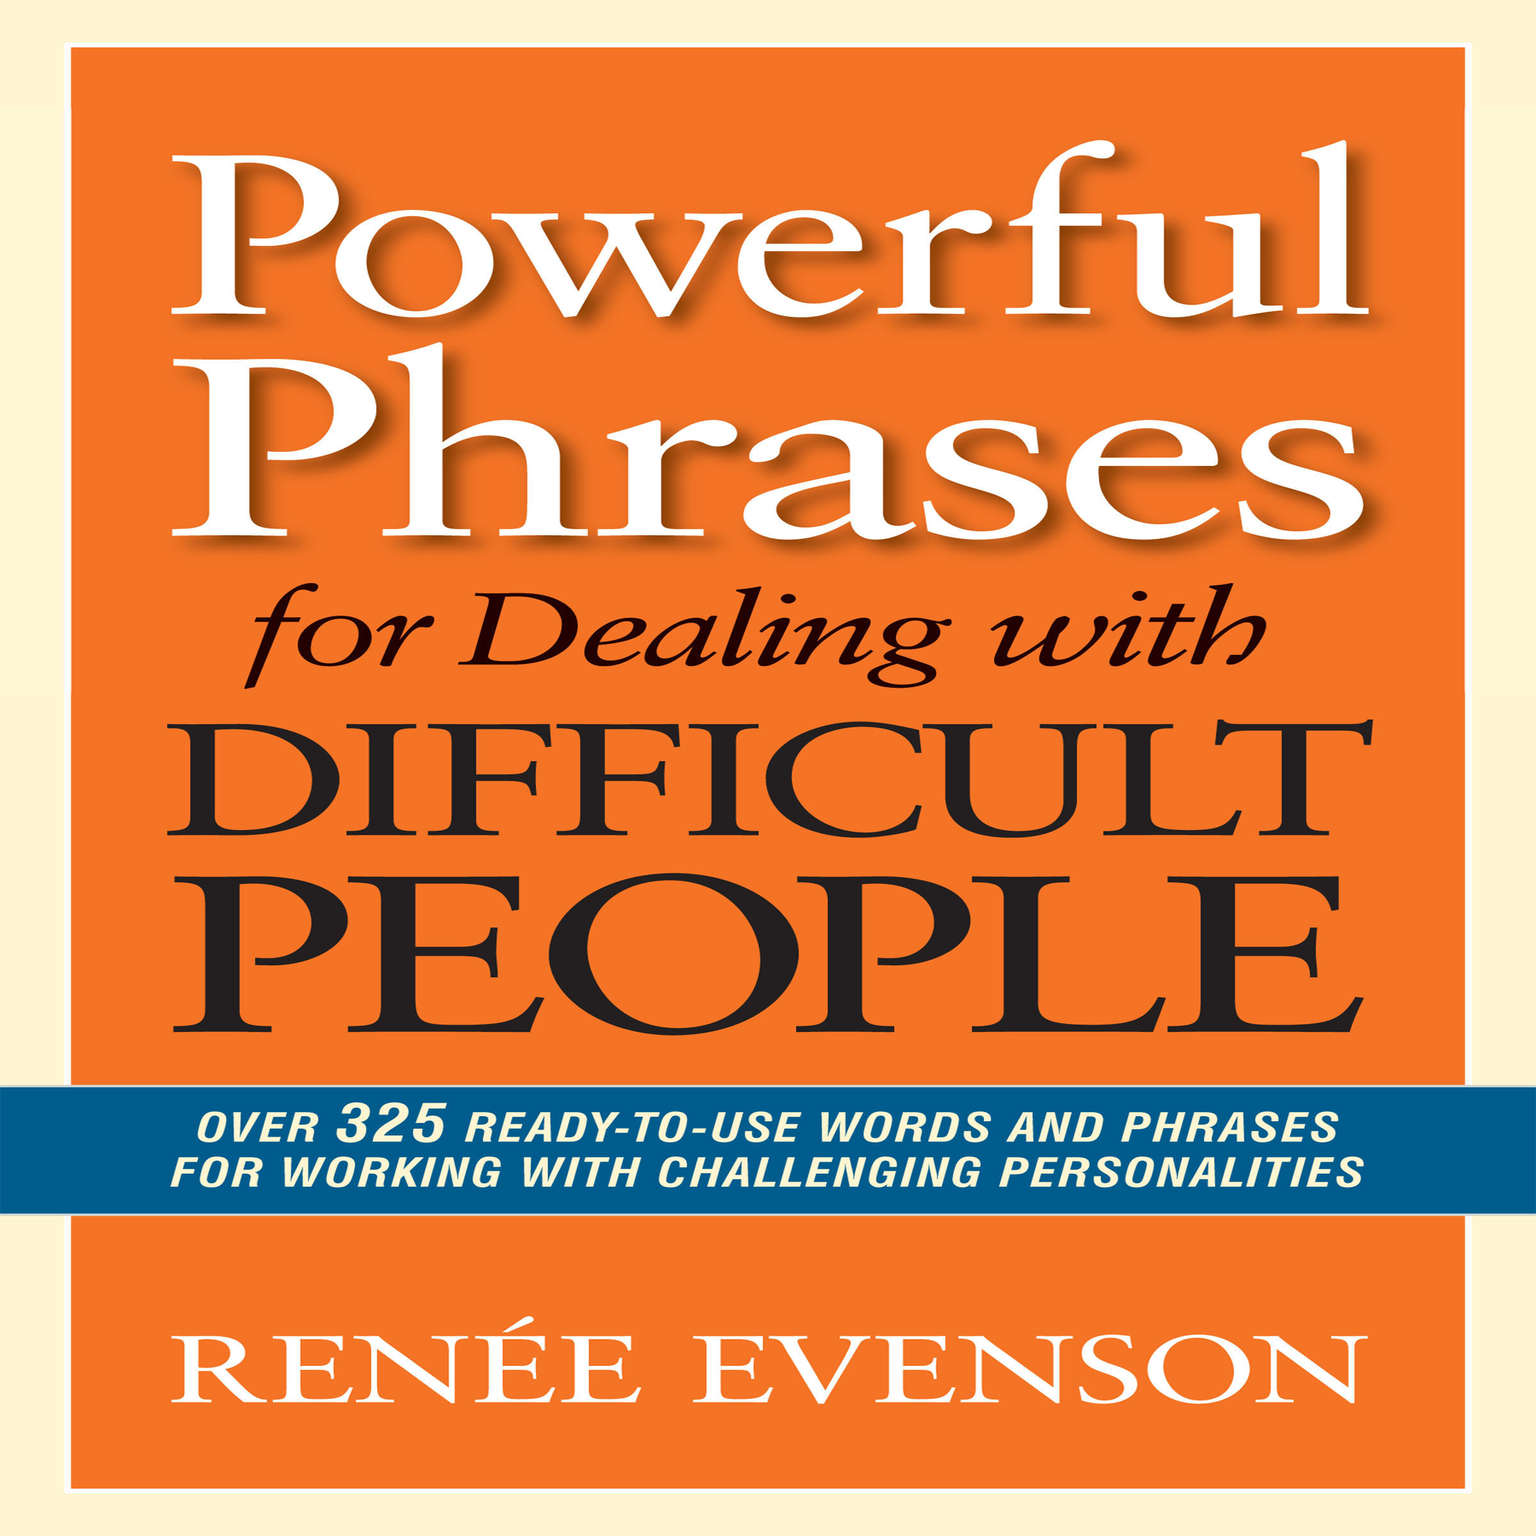 Printable Powerful Phrases for Dealing with Difficult People: Over 325 Ready-to-Use Words and Phrases for Working with Challenging Personalities Audiobook Cover Art